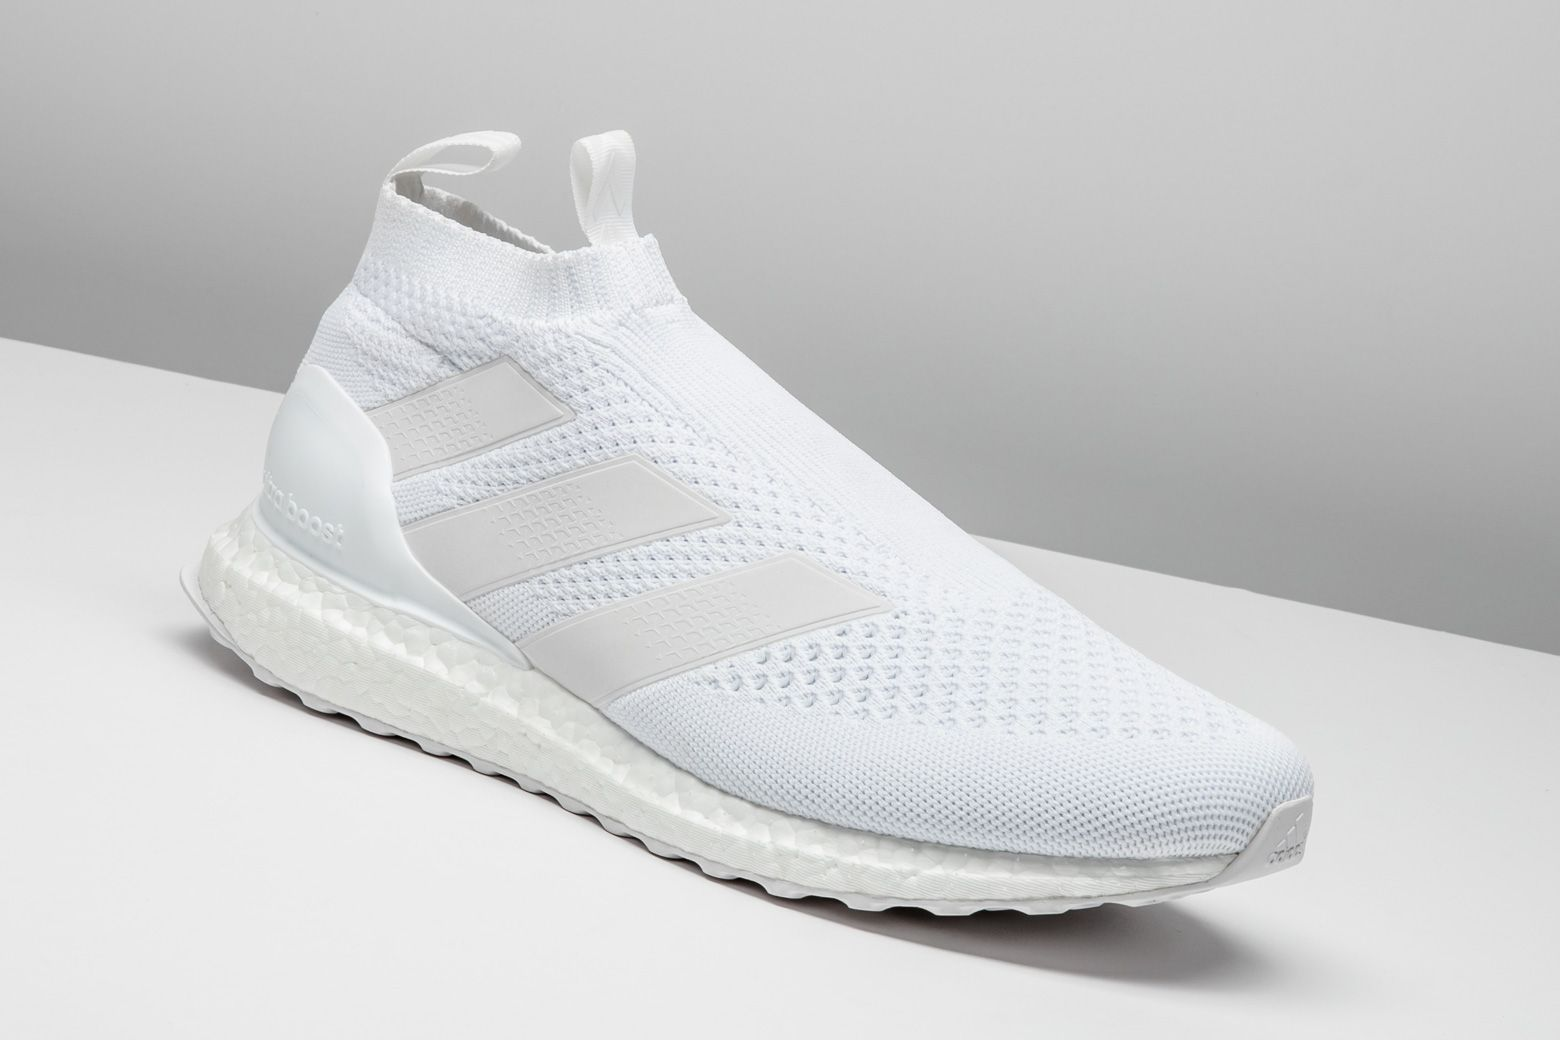 18a47b77a50f6e You can rock the adidas ACE 16+ Purecontrol Ultra Boost or keep them in a